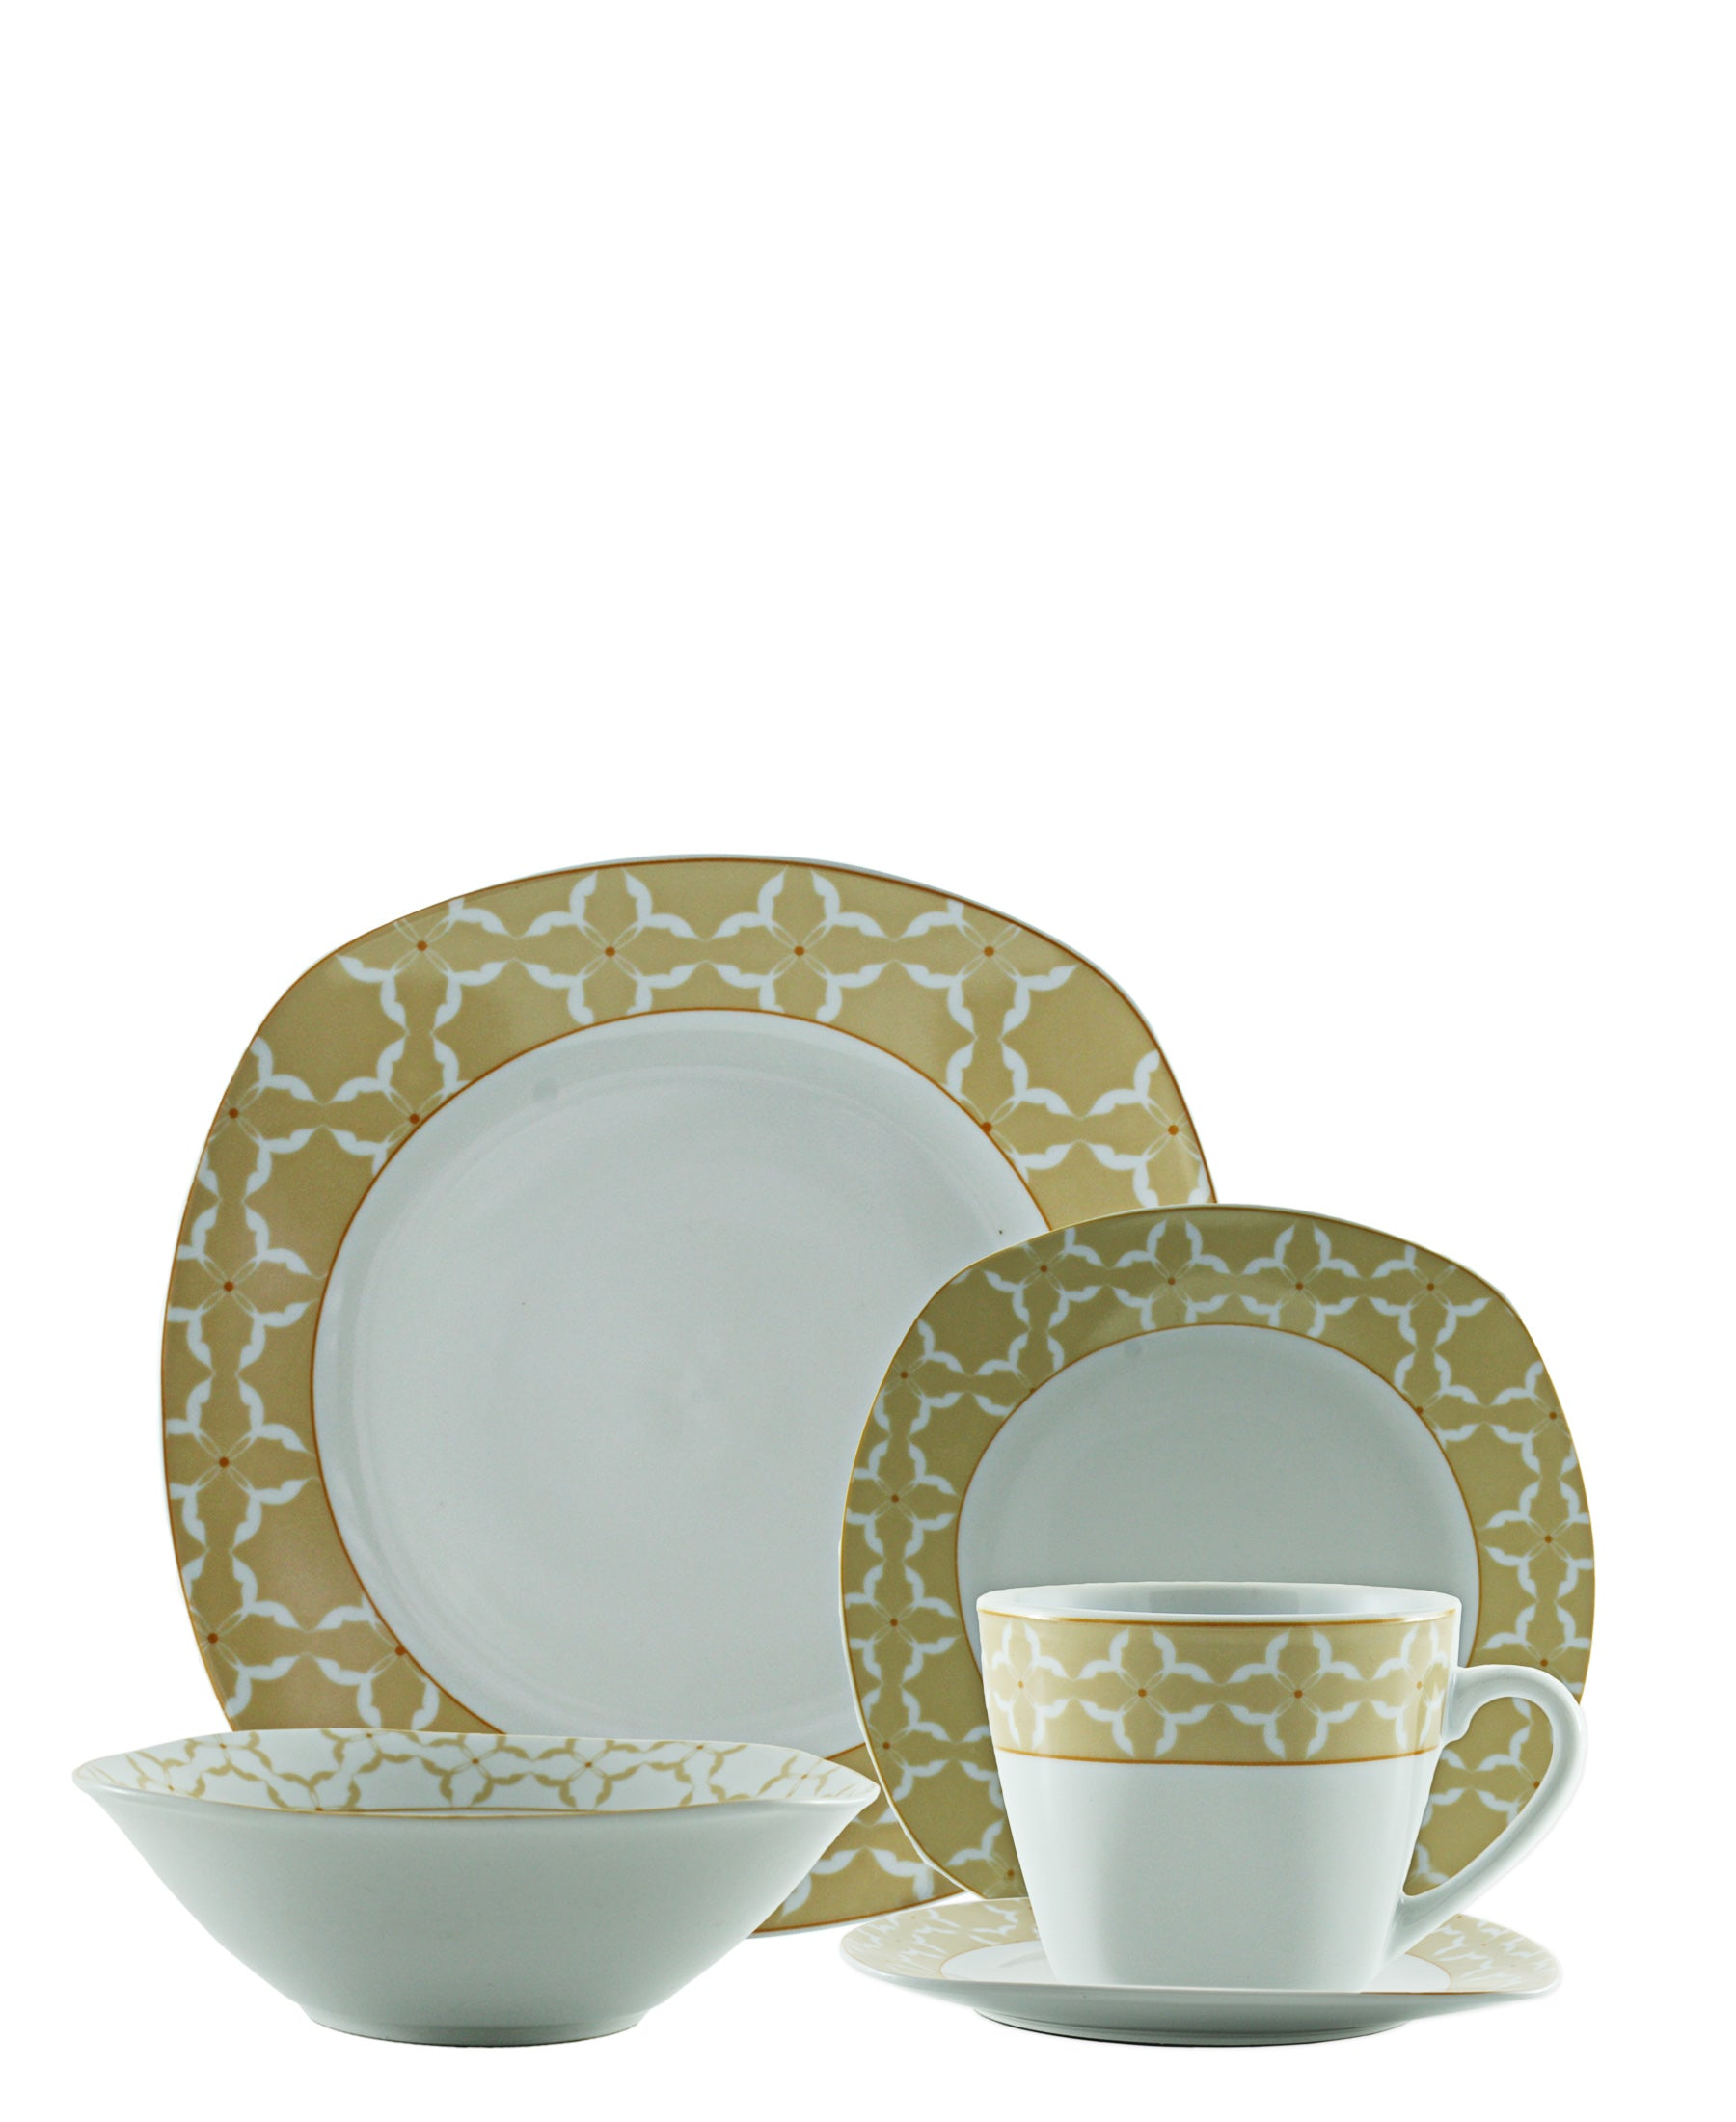 Casa Modeina Dinner Set 20 Piece - Beige